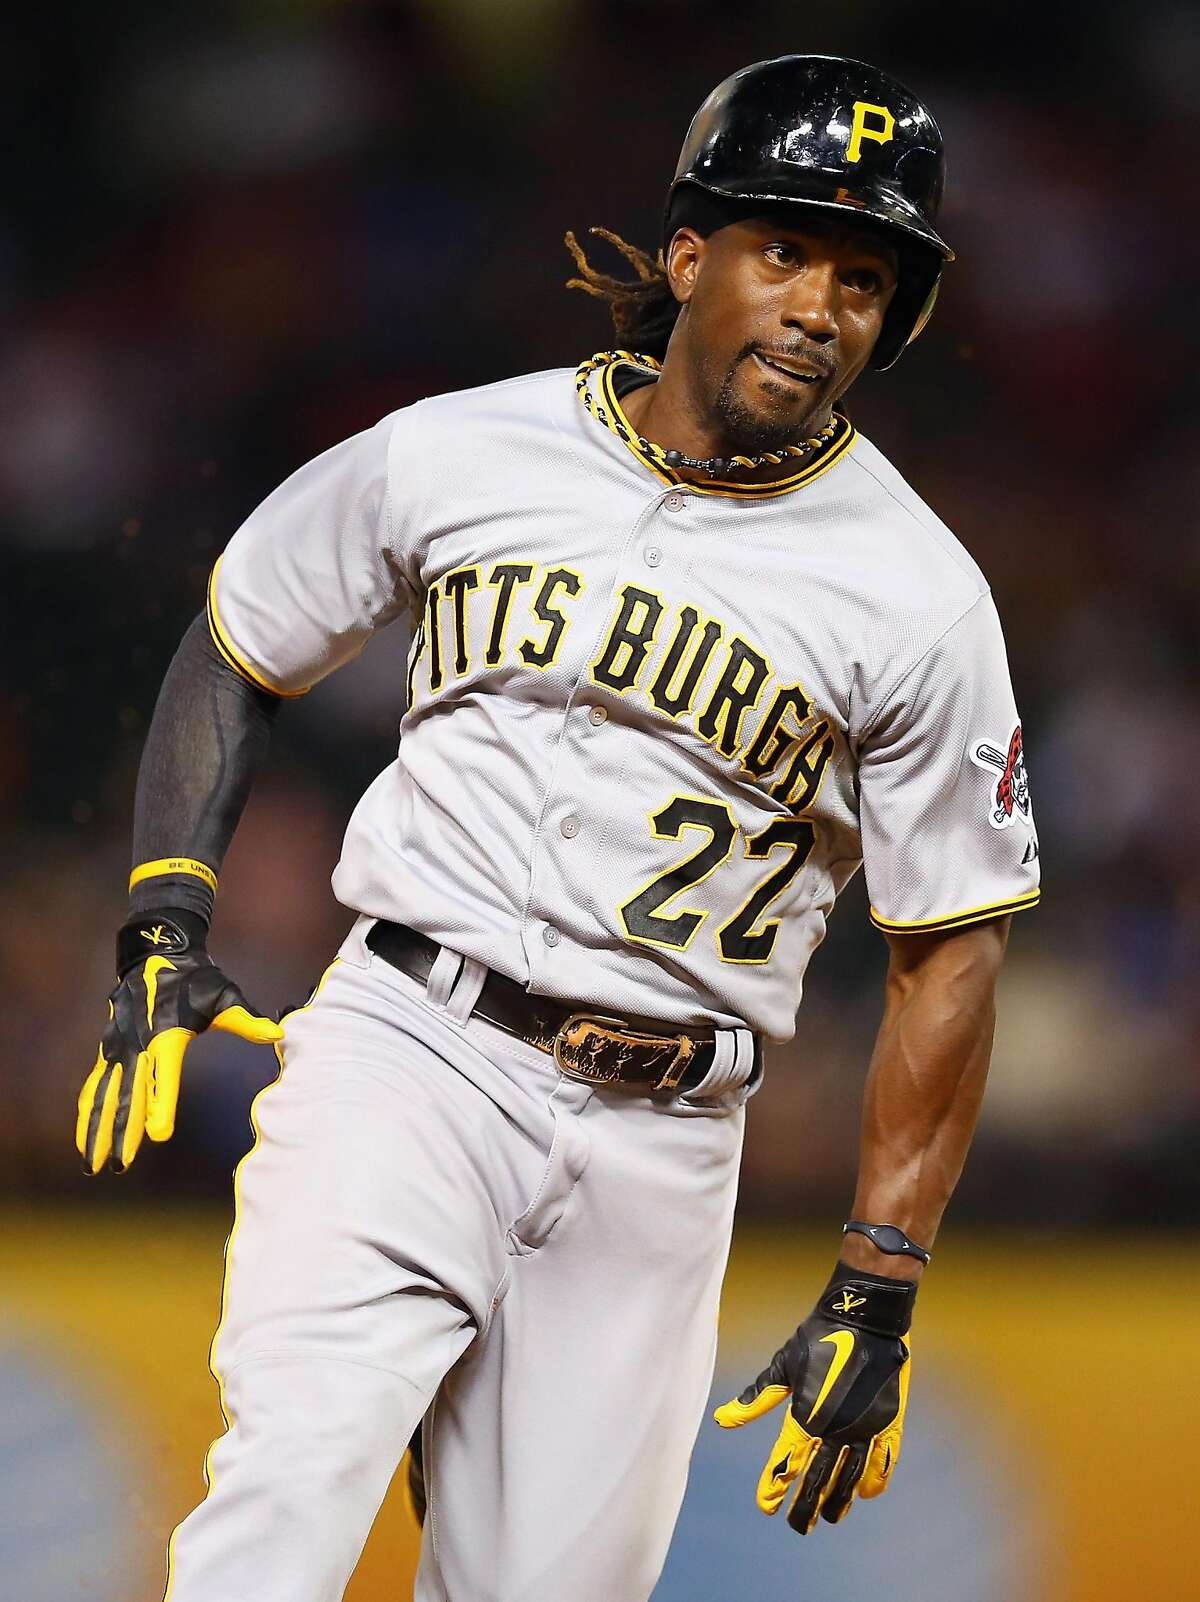 ARLINGTON, TX - SEPTEMBER 09: Andrew McCutchen #22 of the Pittsburgh Pirates at Rangers Ballpark in Arlington on September 9, 2013 in Arlington, Texas. (Photo by Ronald Martinez/Getty Images)